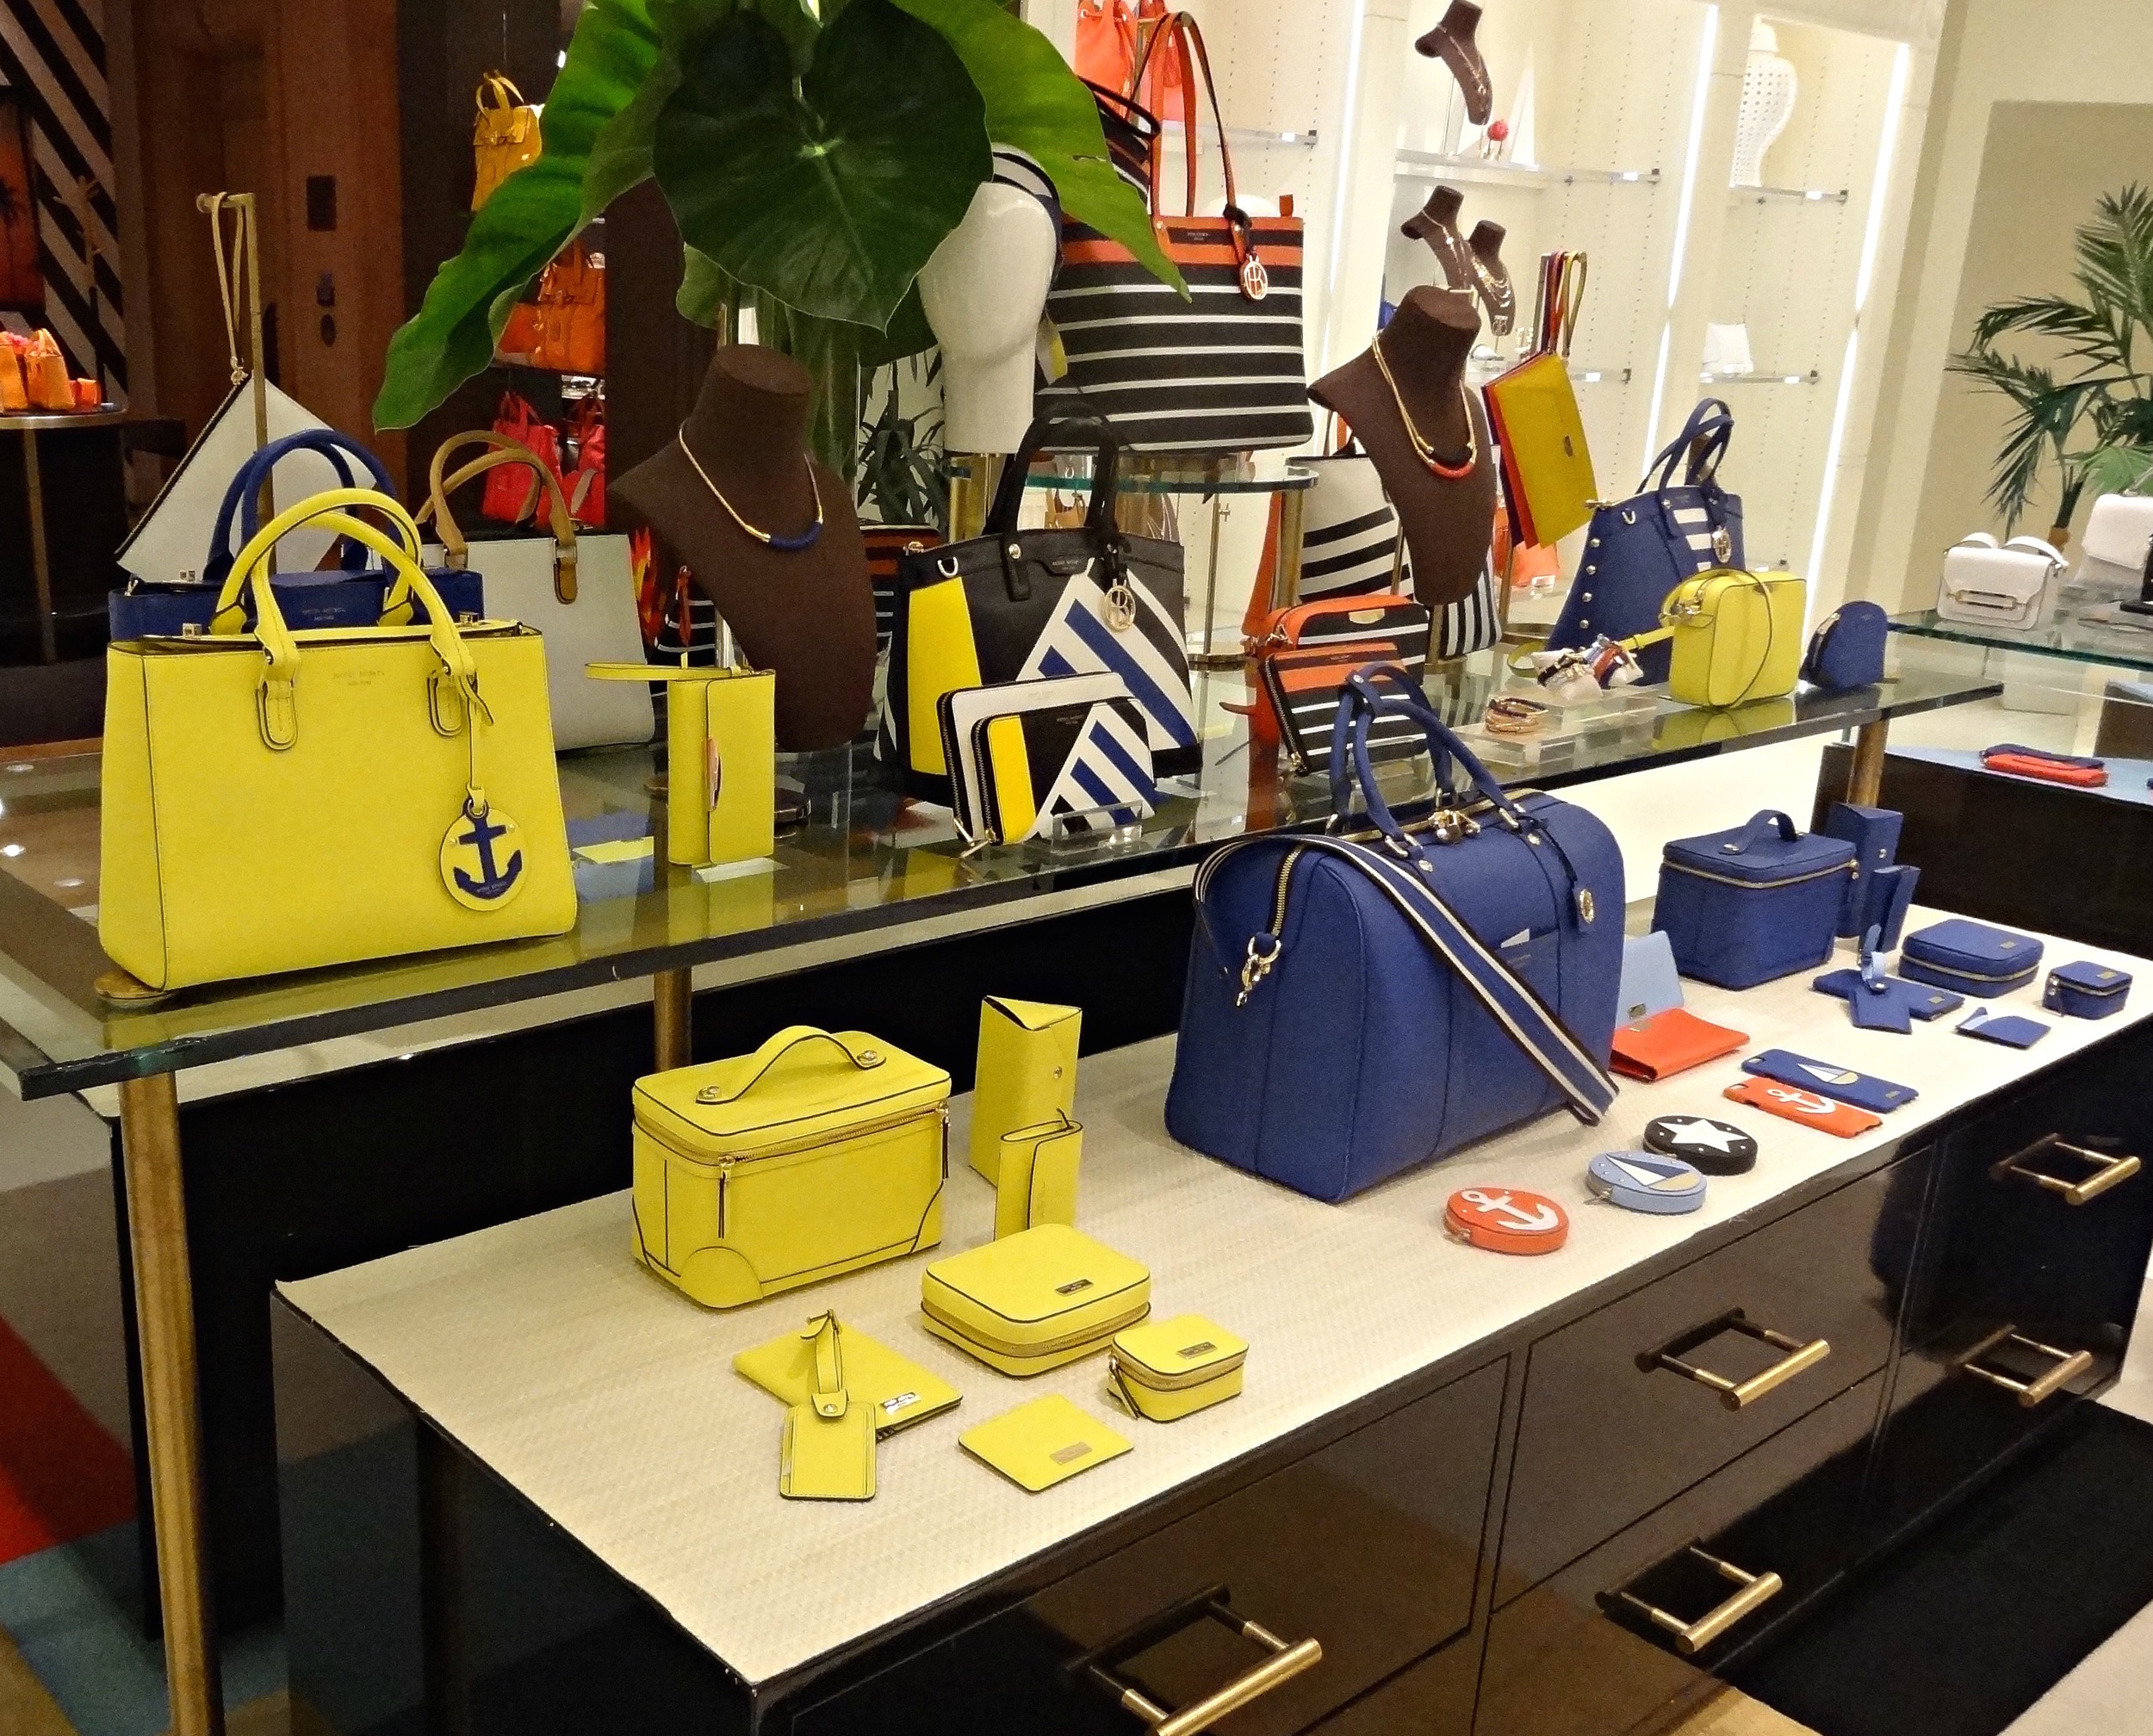 Henri Bendel Summer Spring Preview 2016 Louboutins & Love Fashion Blog Esther Santer Bucket Bag Orange Hot Pink Backpack Purse Structured Bag Wallet Collection Designer OOTD Outfit Stripes Travel Jetsetter Yellow Red Blue Luggage Pom Pom Beach Tote.jpg